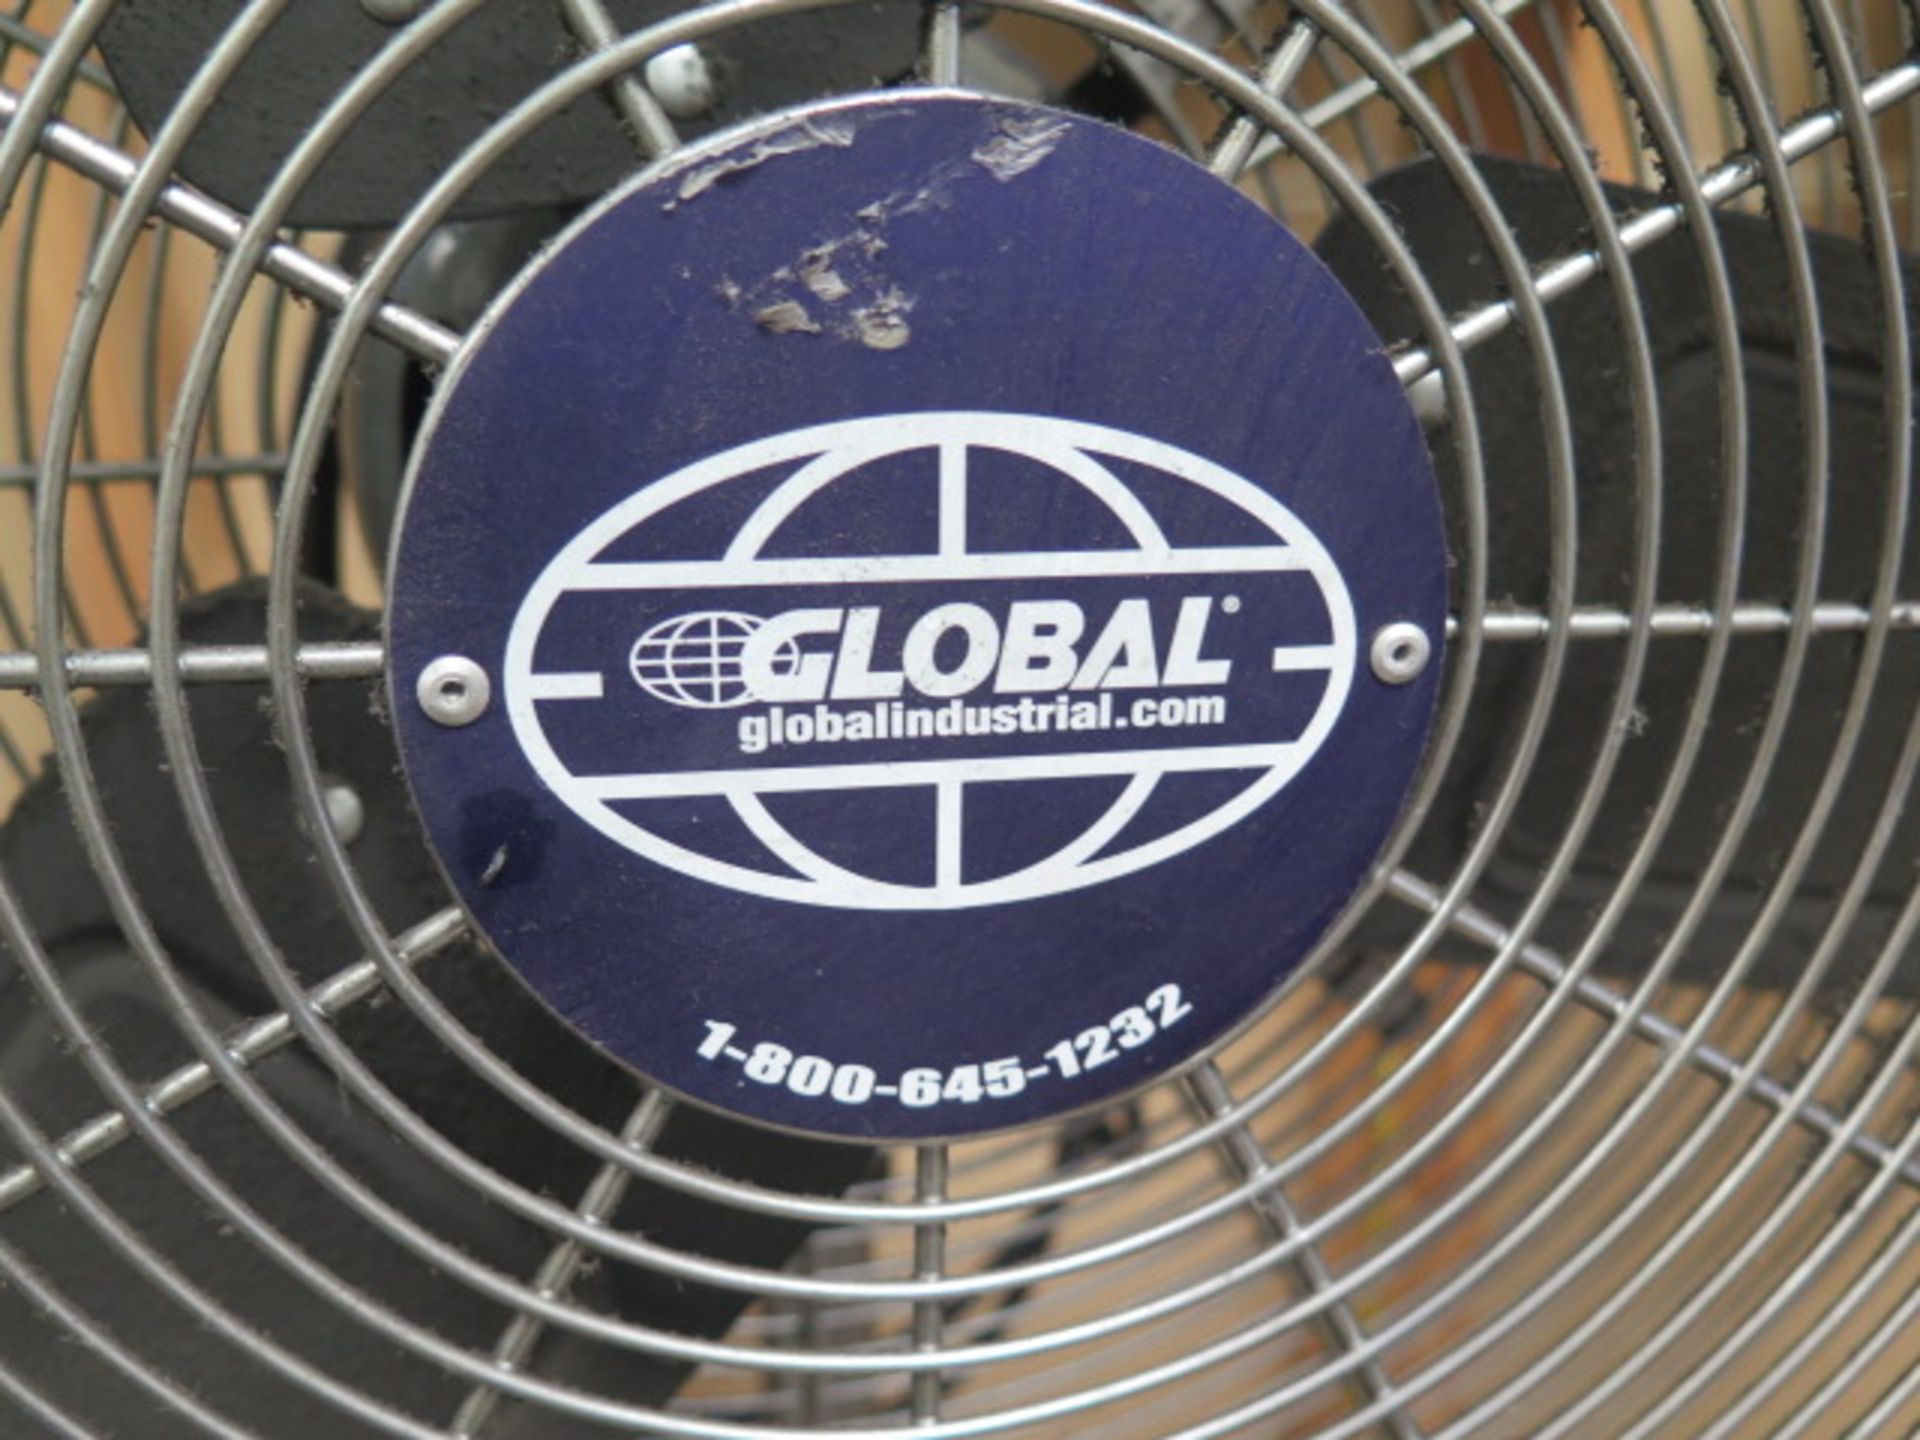 Shop Fans (2) (SOLD AS-IS - NO WARRANTY) - Image 3 of 3